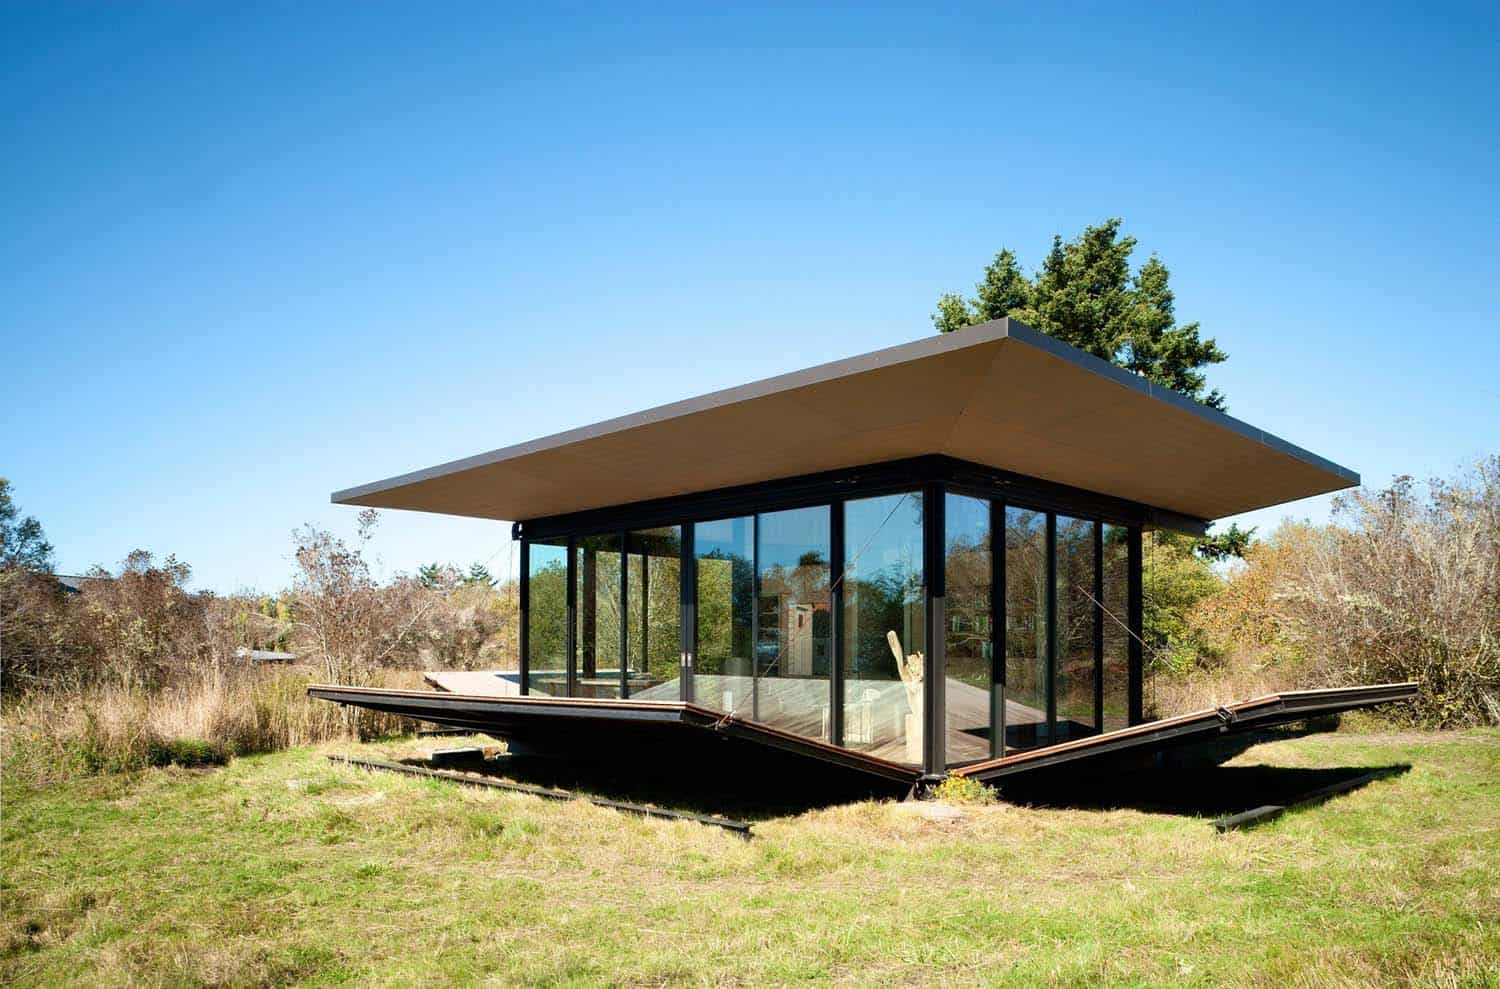 Tiny Modern Cabin-Olson Kundig Architects-06-1 Kindesign